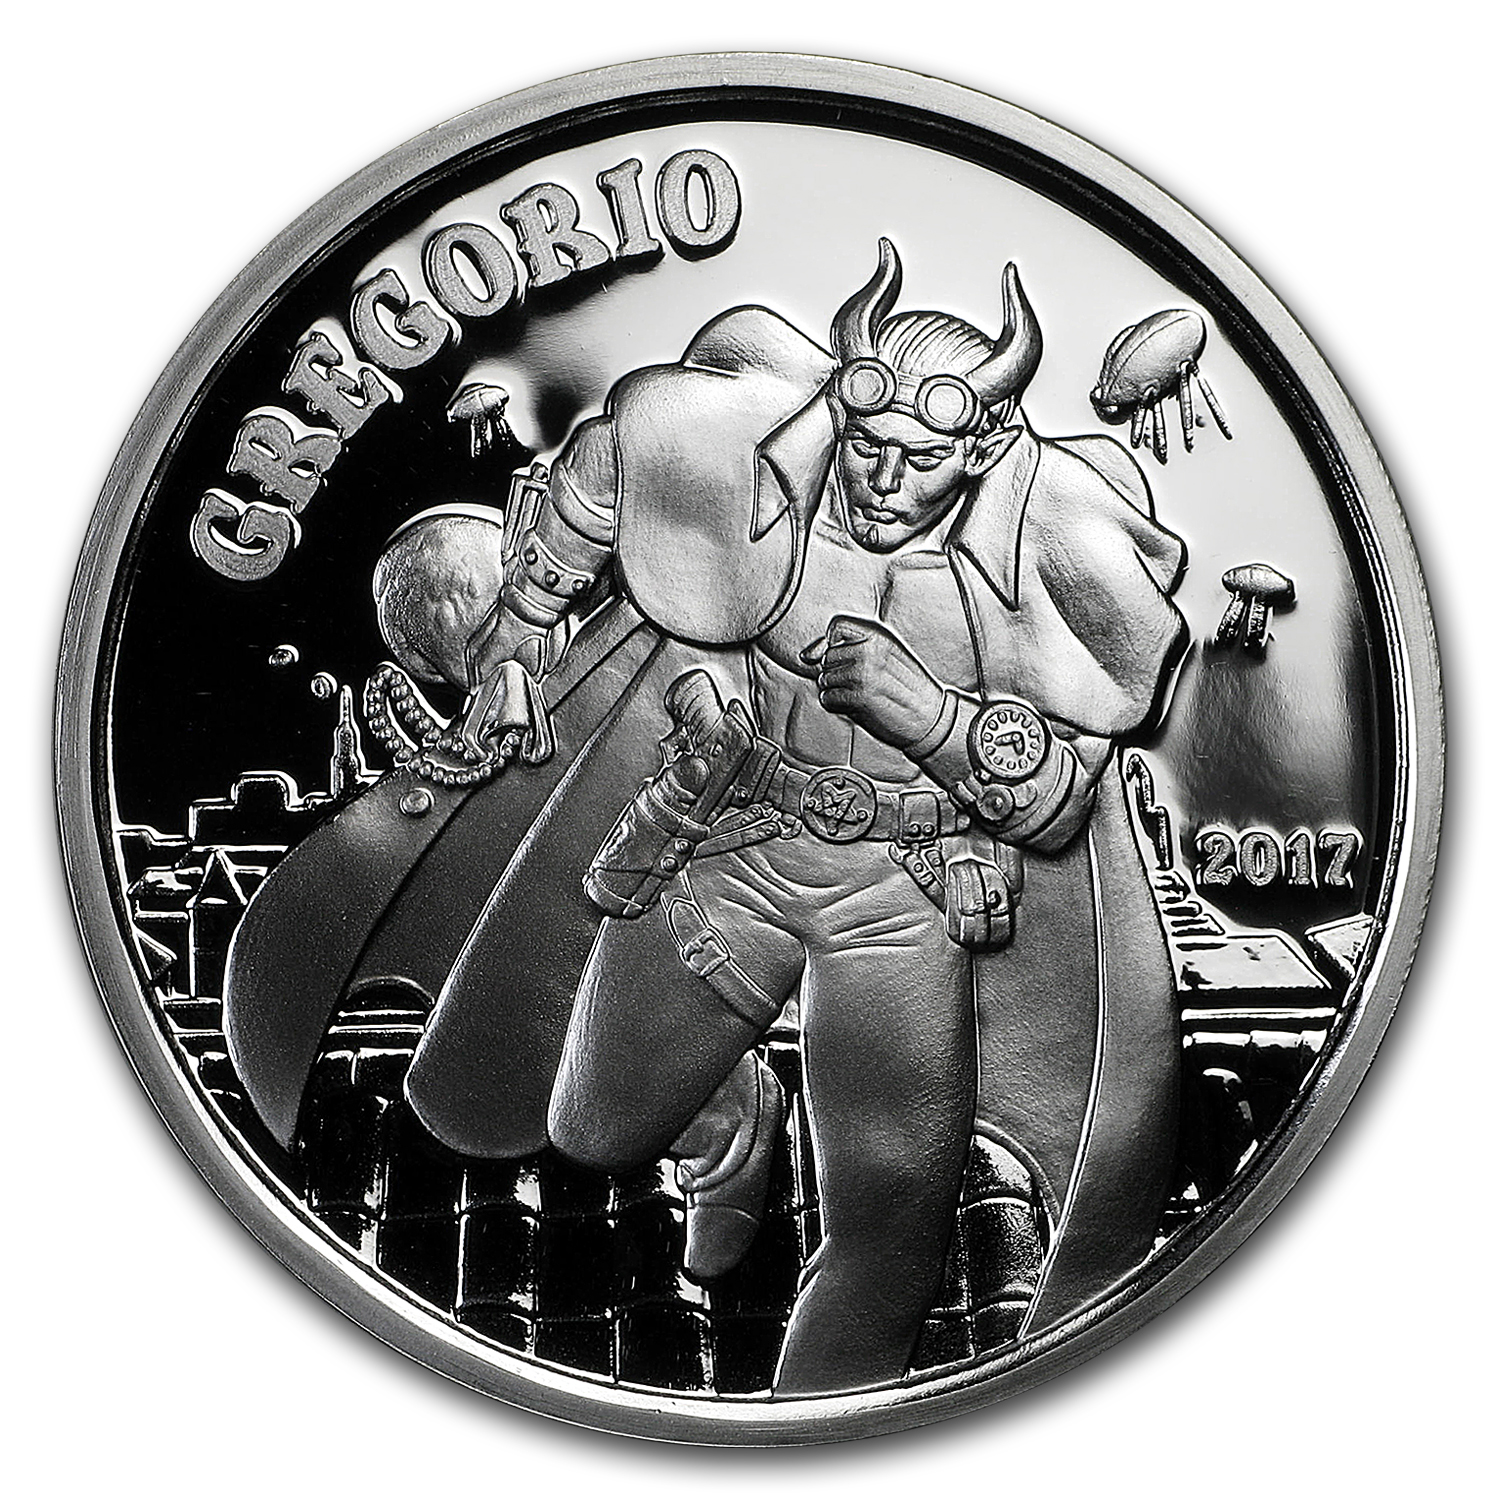 1 oz Silver Proof Round - Angels & Demons Series (Gregorio)